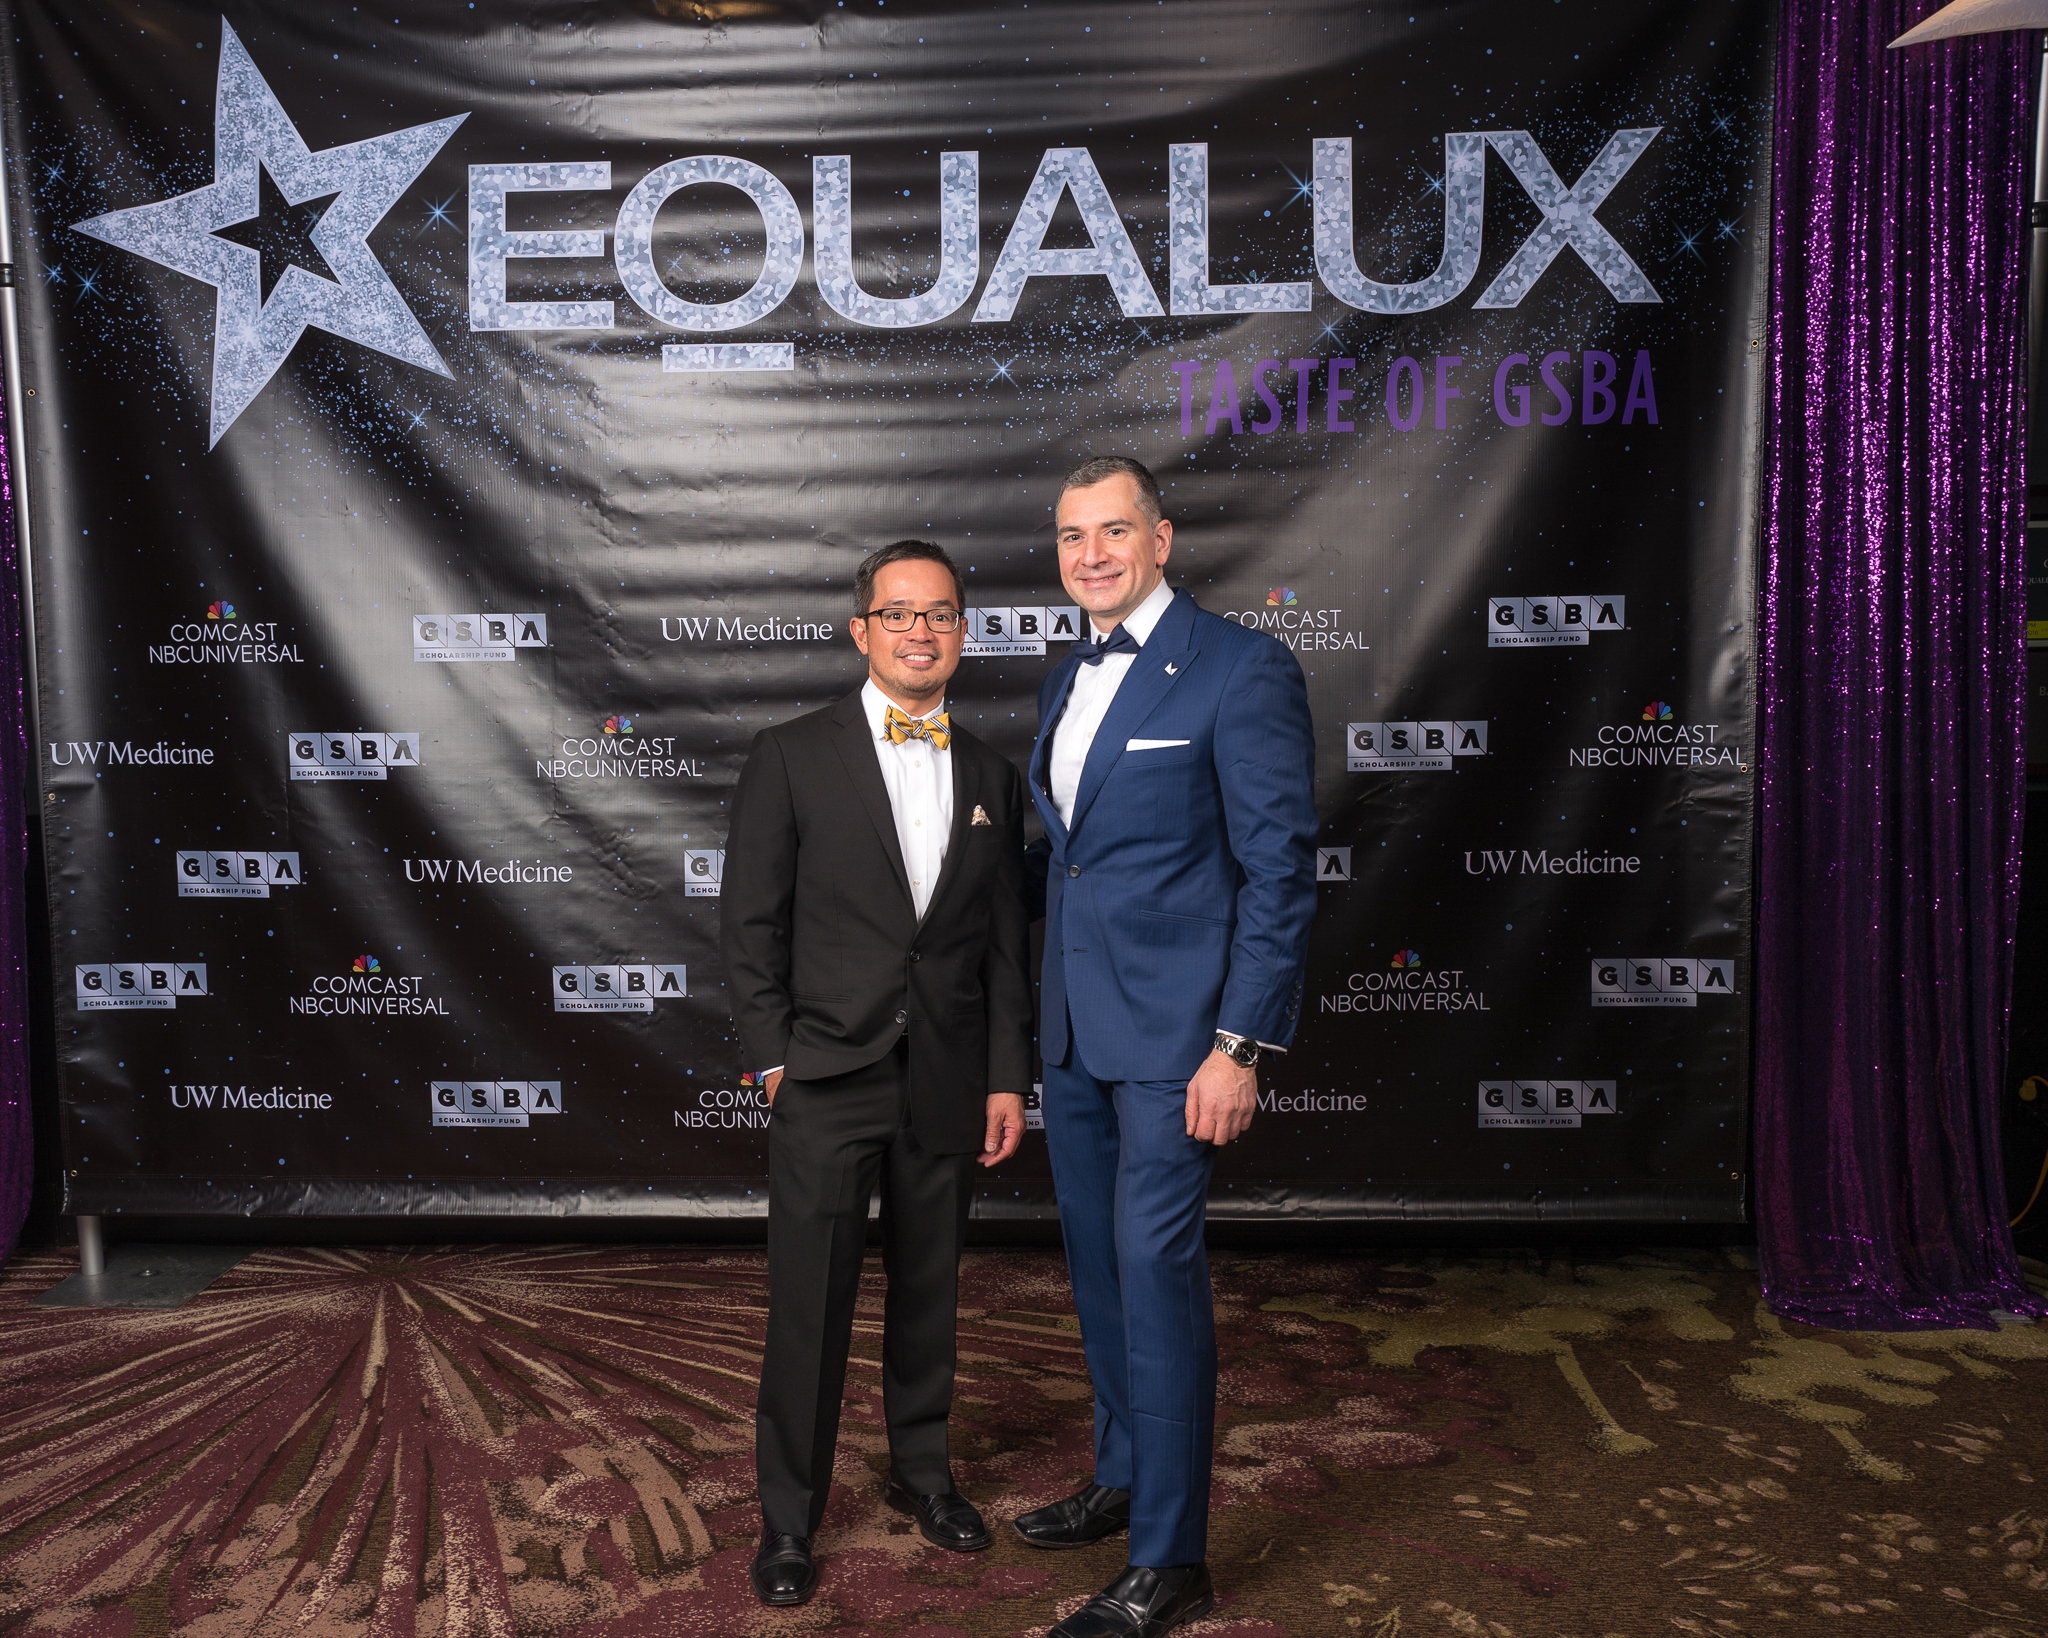 111718_GSBA EQUALUX at The Westin Seattle (Credit- Nate Gowdy)-147.jpg